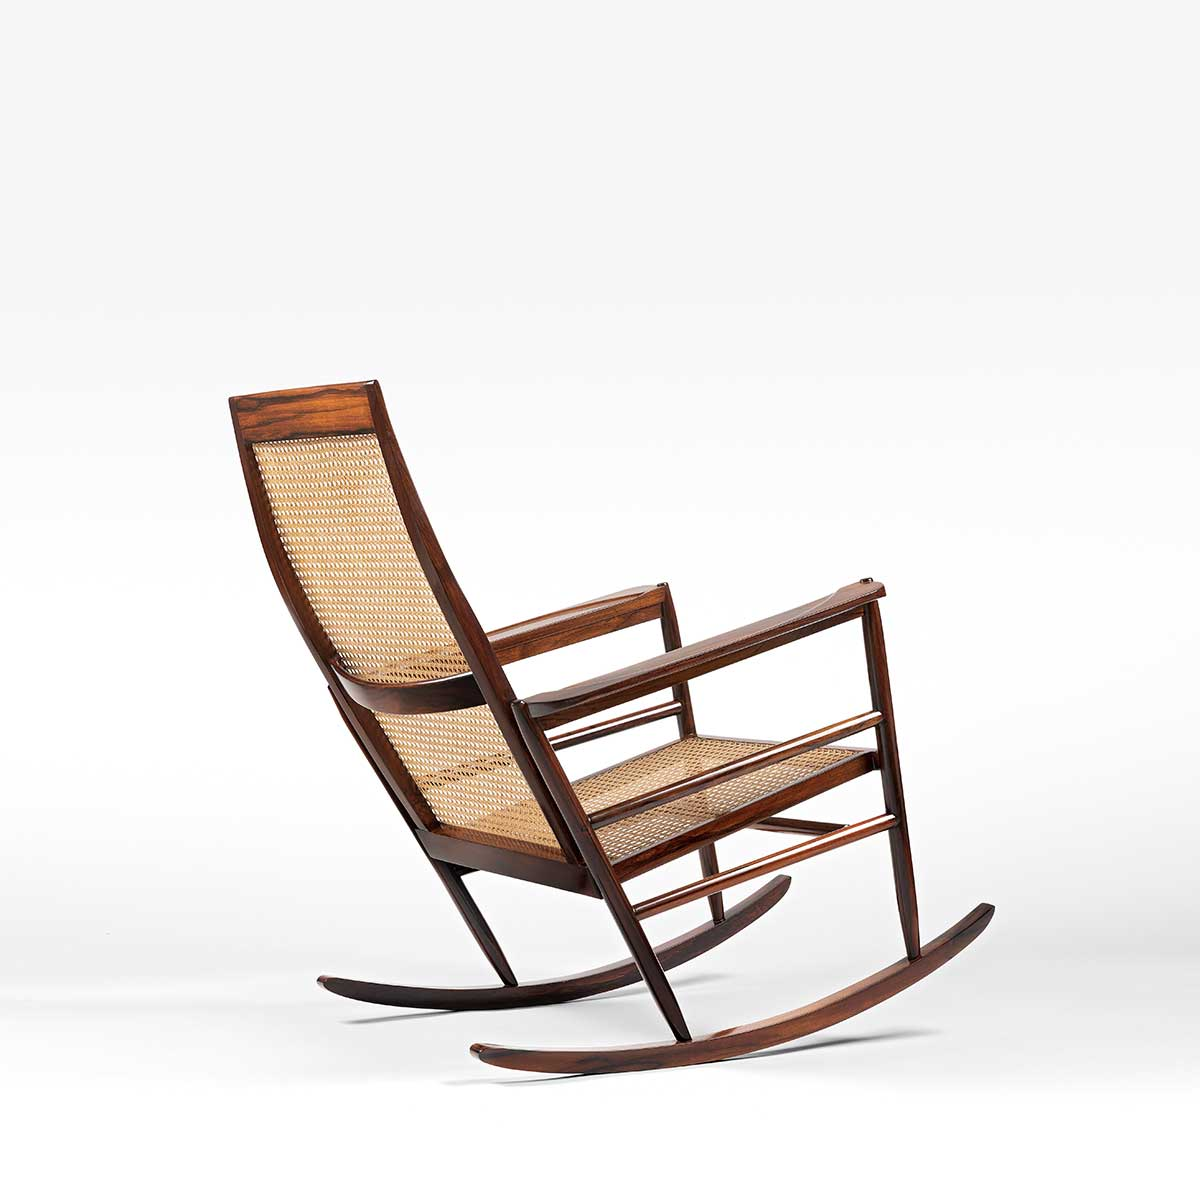 Joaquim Tenreiro, Rocking Chair, vue 02